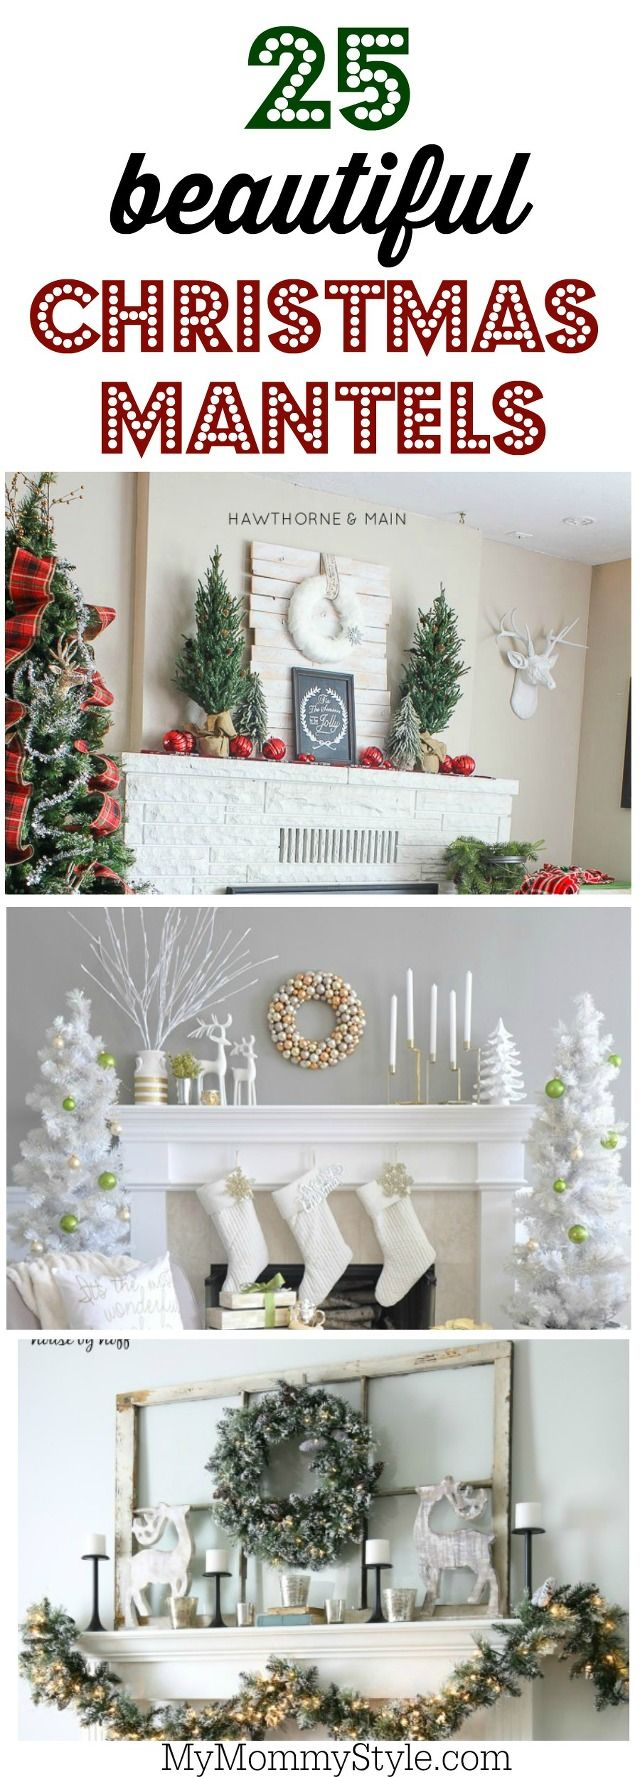 Christmas mantel decorations under tv - 25 Beautiful Christmas Mantel Decorating Ideas